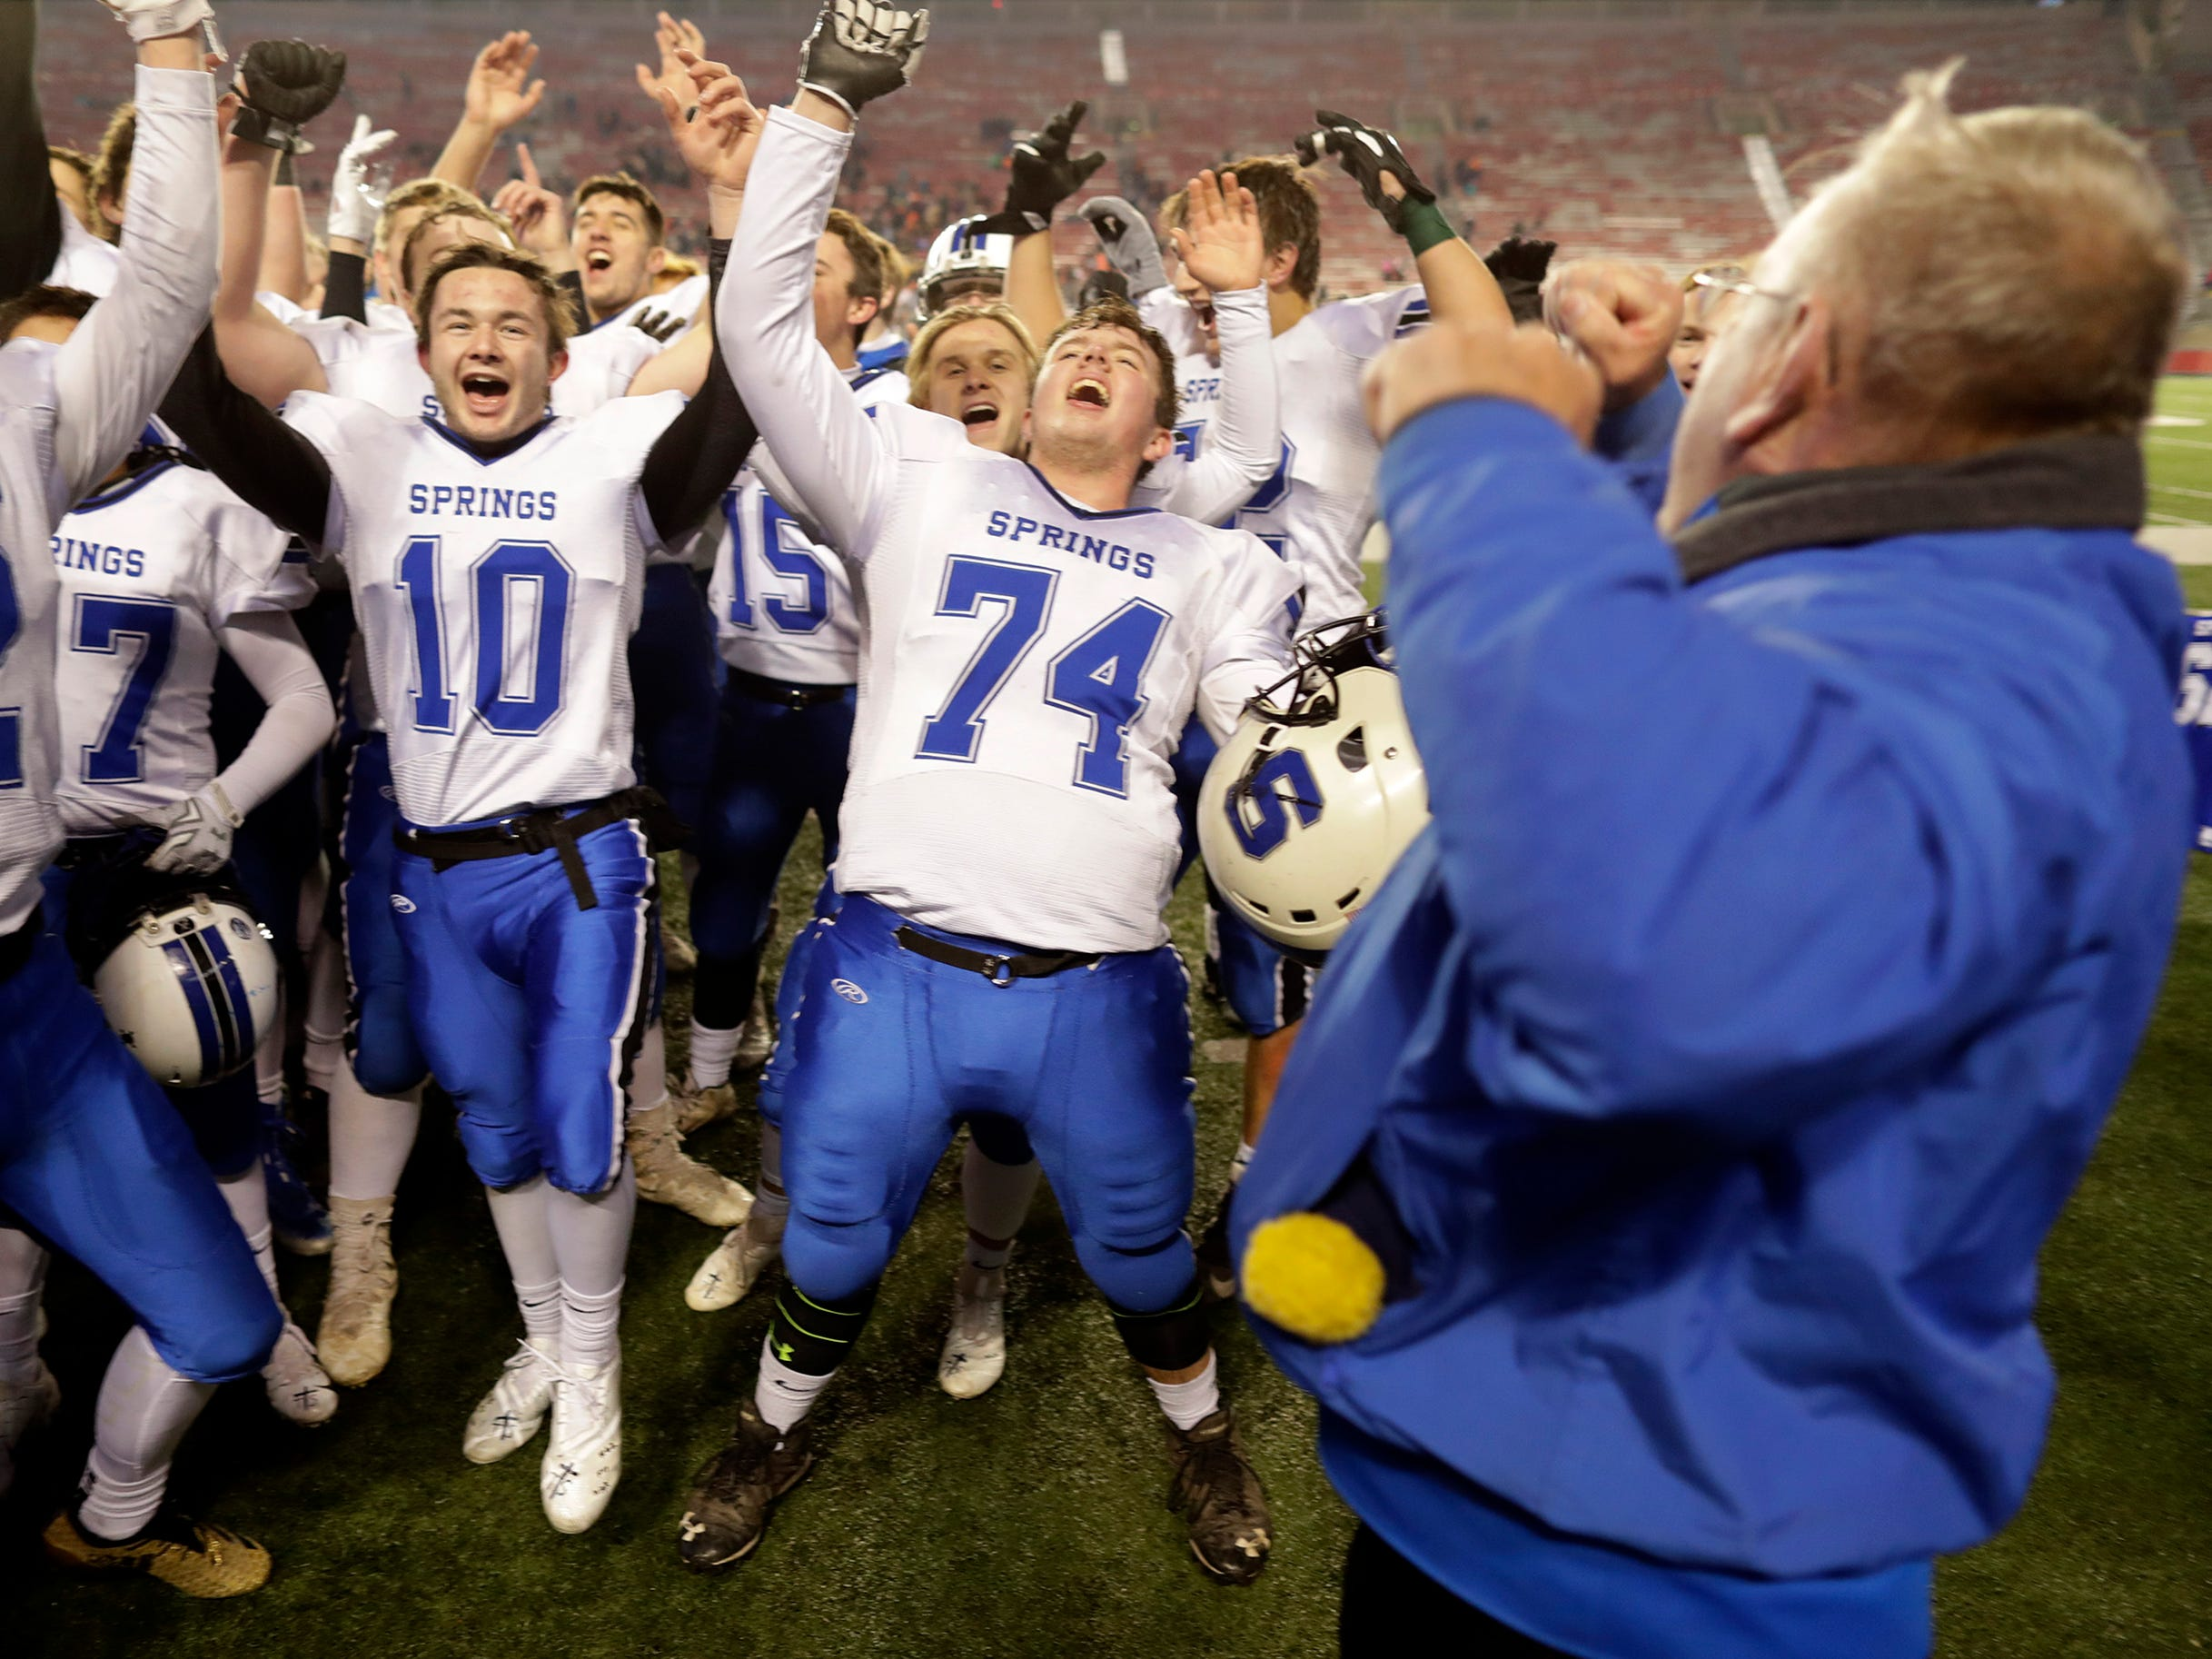 St. Mary's Springs Academy playerscelebrate the Ledgers' victory over Stratford High School during the WIAA Division  5 state championship football game on Thursday, November 15, 2018, at Camp Randall in Madison, Wis.Wm. Glasheen/USA TODAY NETWORK-Wisconsin.